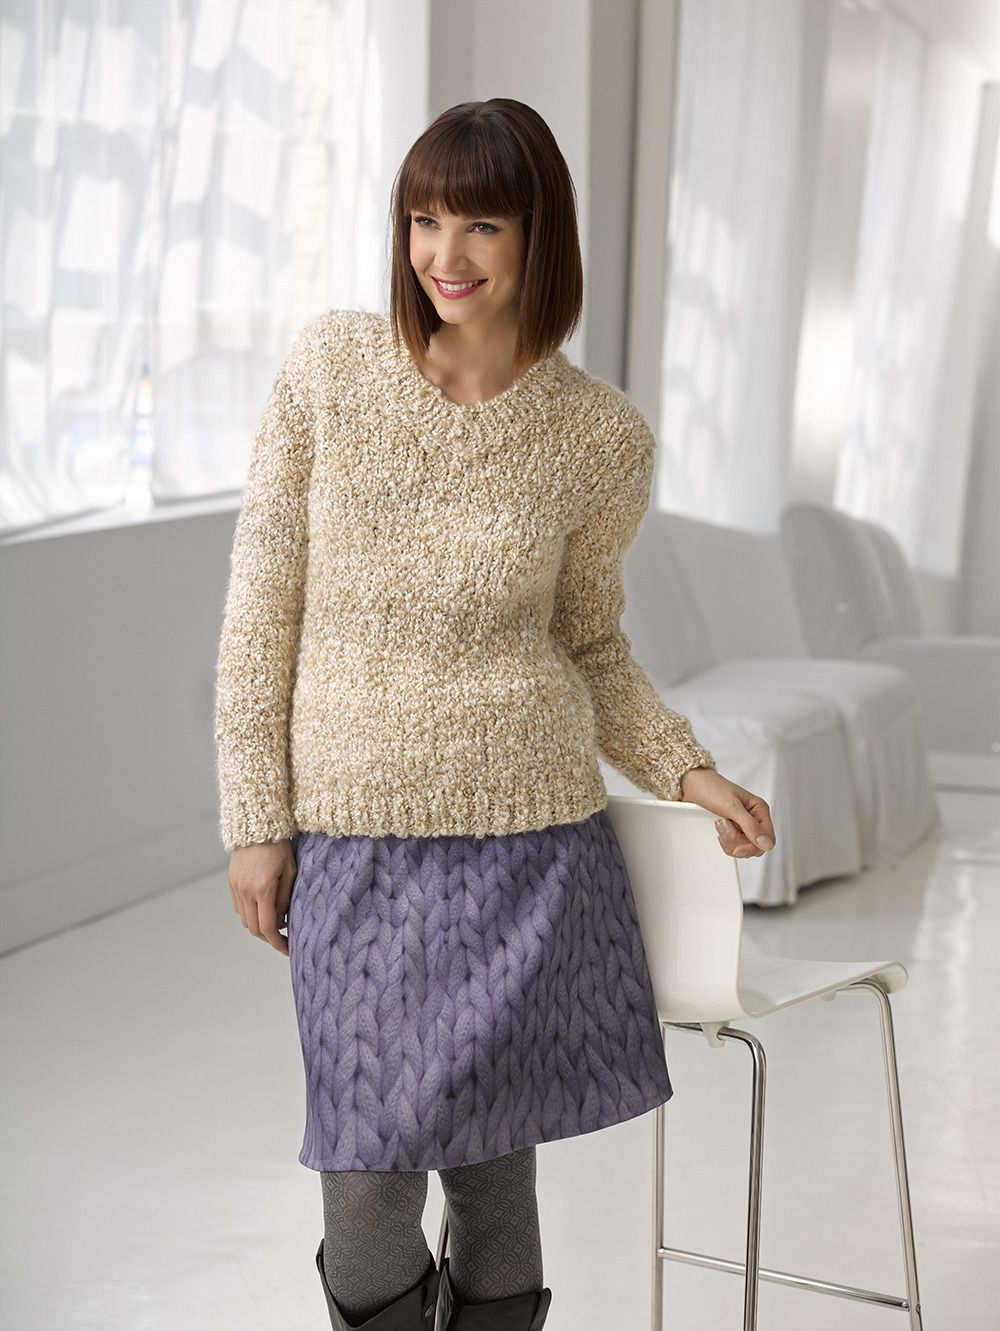 Inviting Times Pullover in Lion Brand Homespun Thick & Quick - L30224